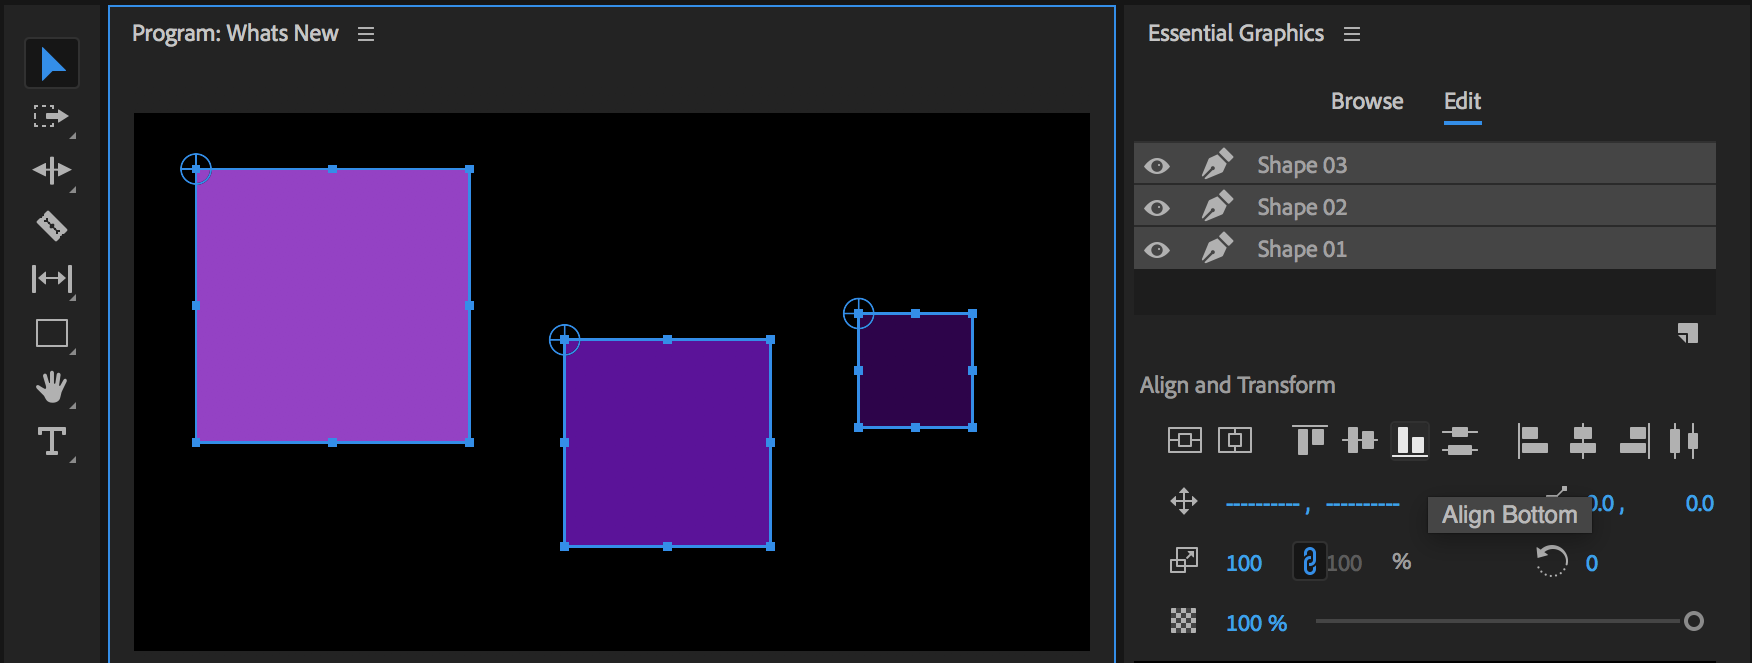 Align and distribute layers in the Essential Graphics Panel from  helpx.adobe